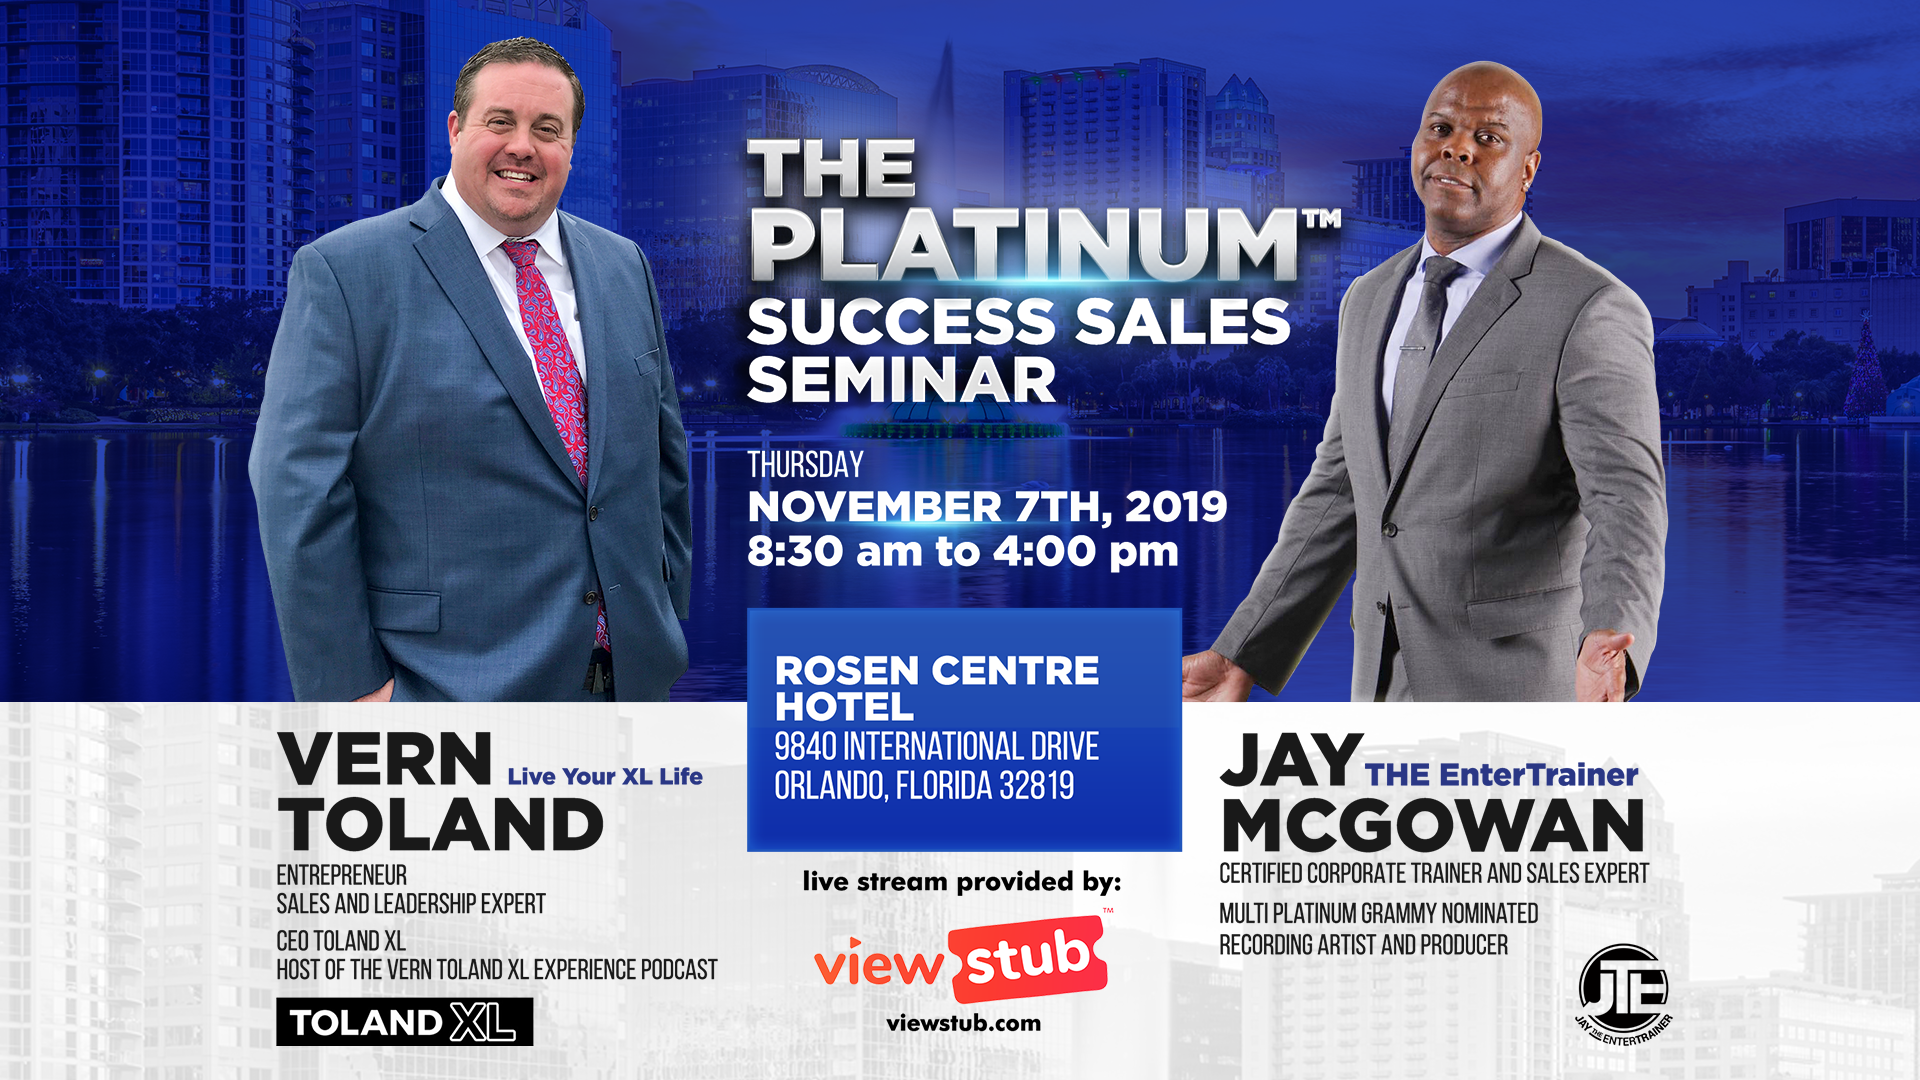 Photo for THE PLATINUM SUCCESS SALES SEMINAR on ViewStub